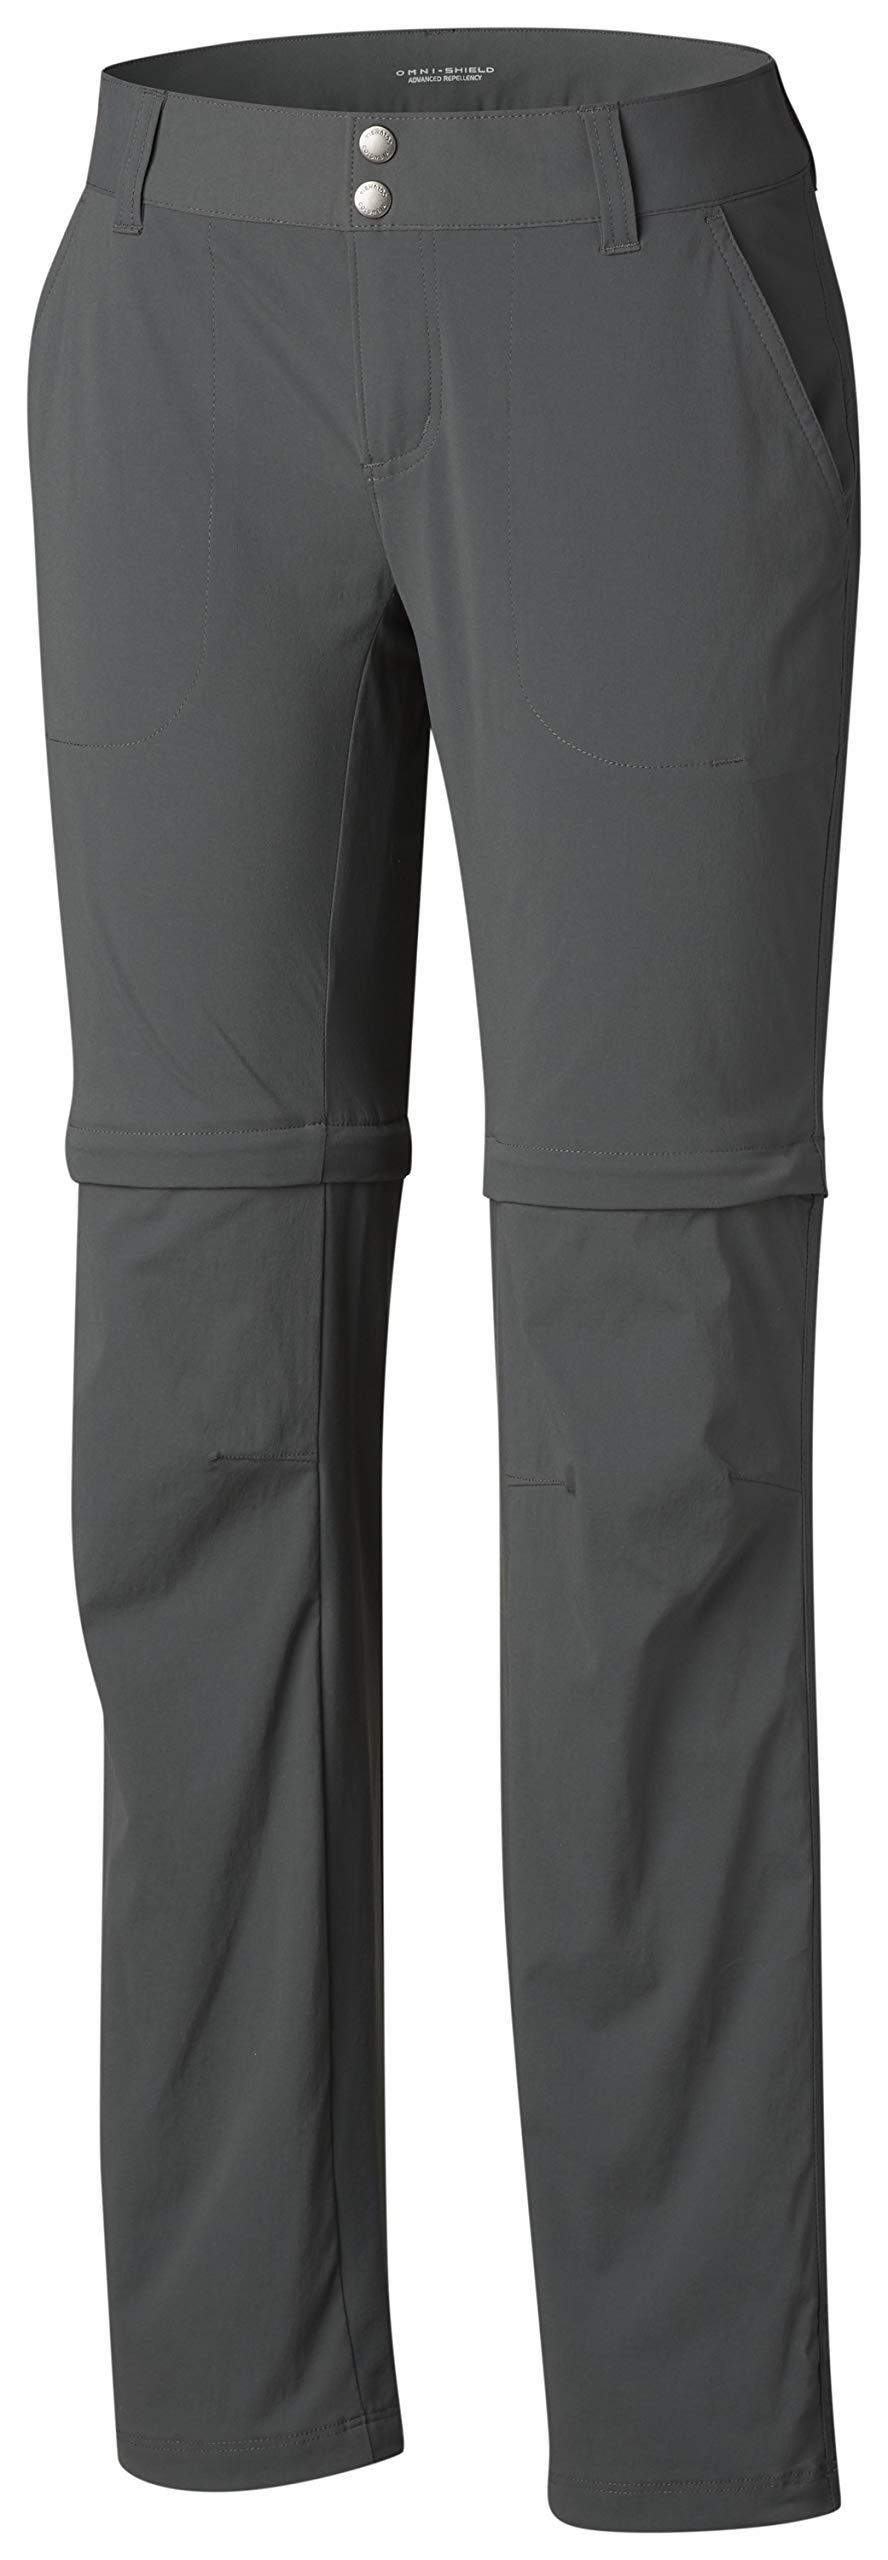 Columbia Women's Saturday Trail II Convertible Pant, Water & Stain Resistant